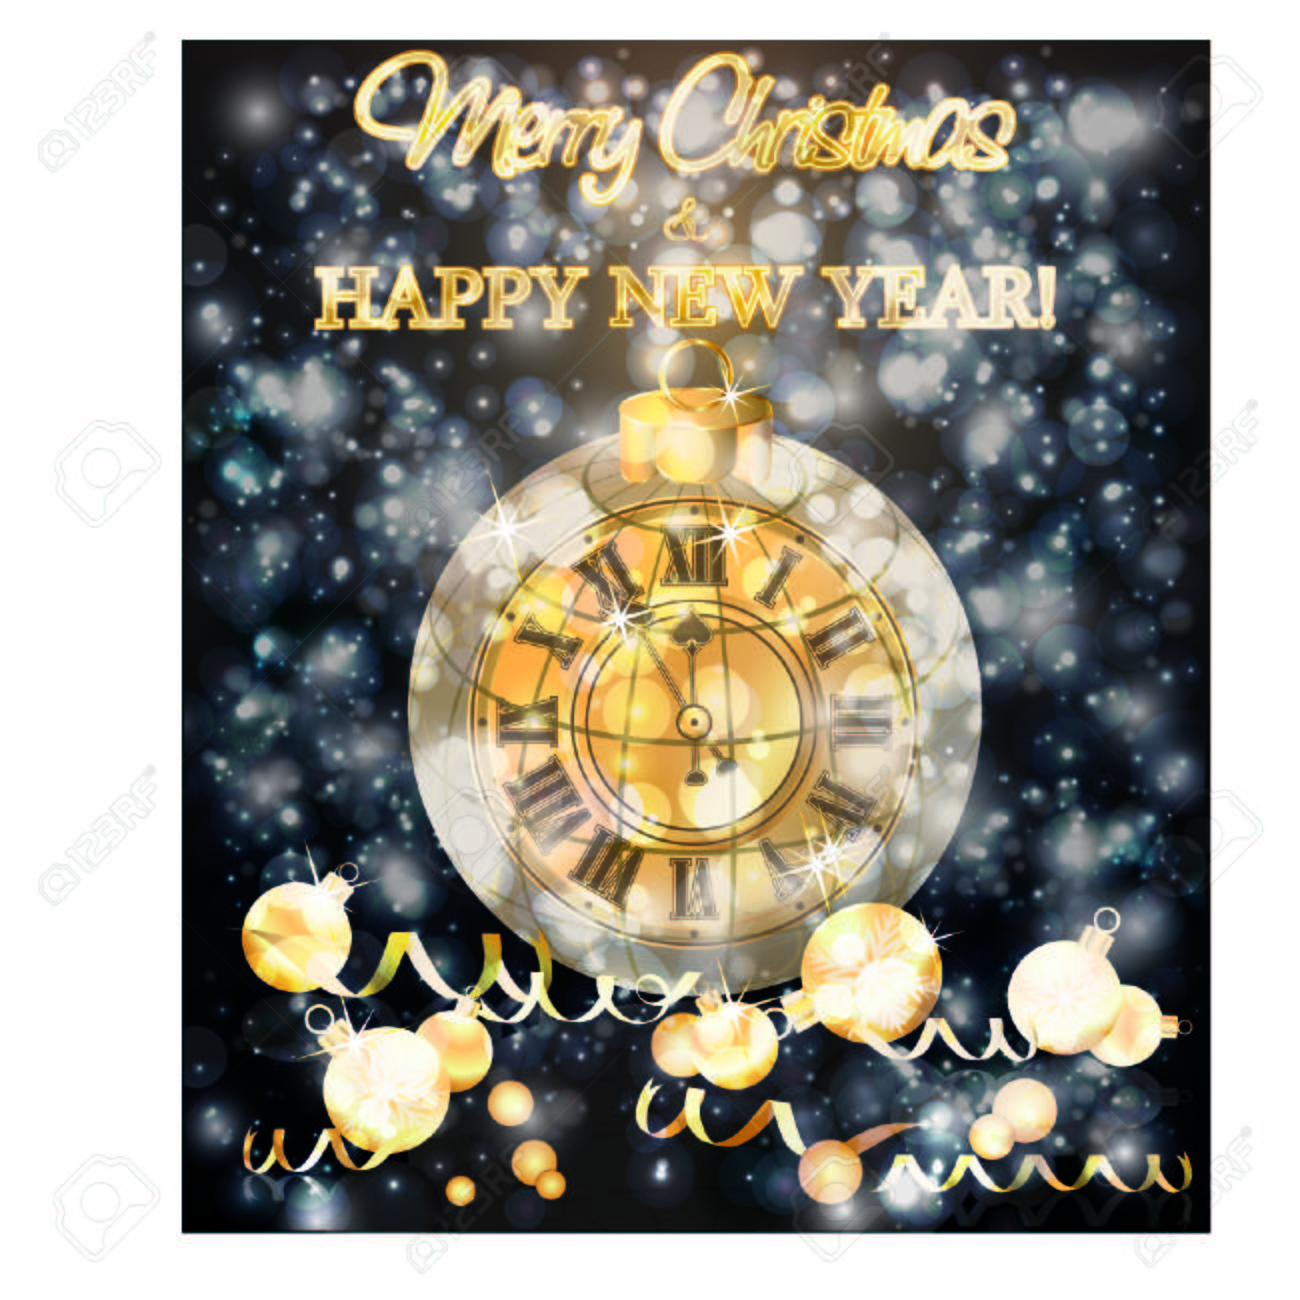 merry christmas new year banner with xmas clock vector illustration stock vector 109142821